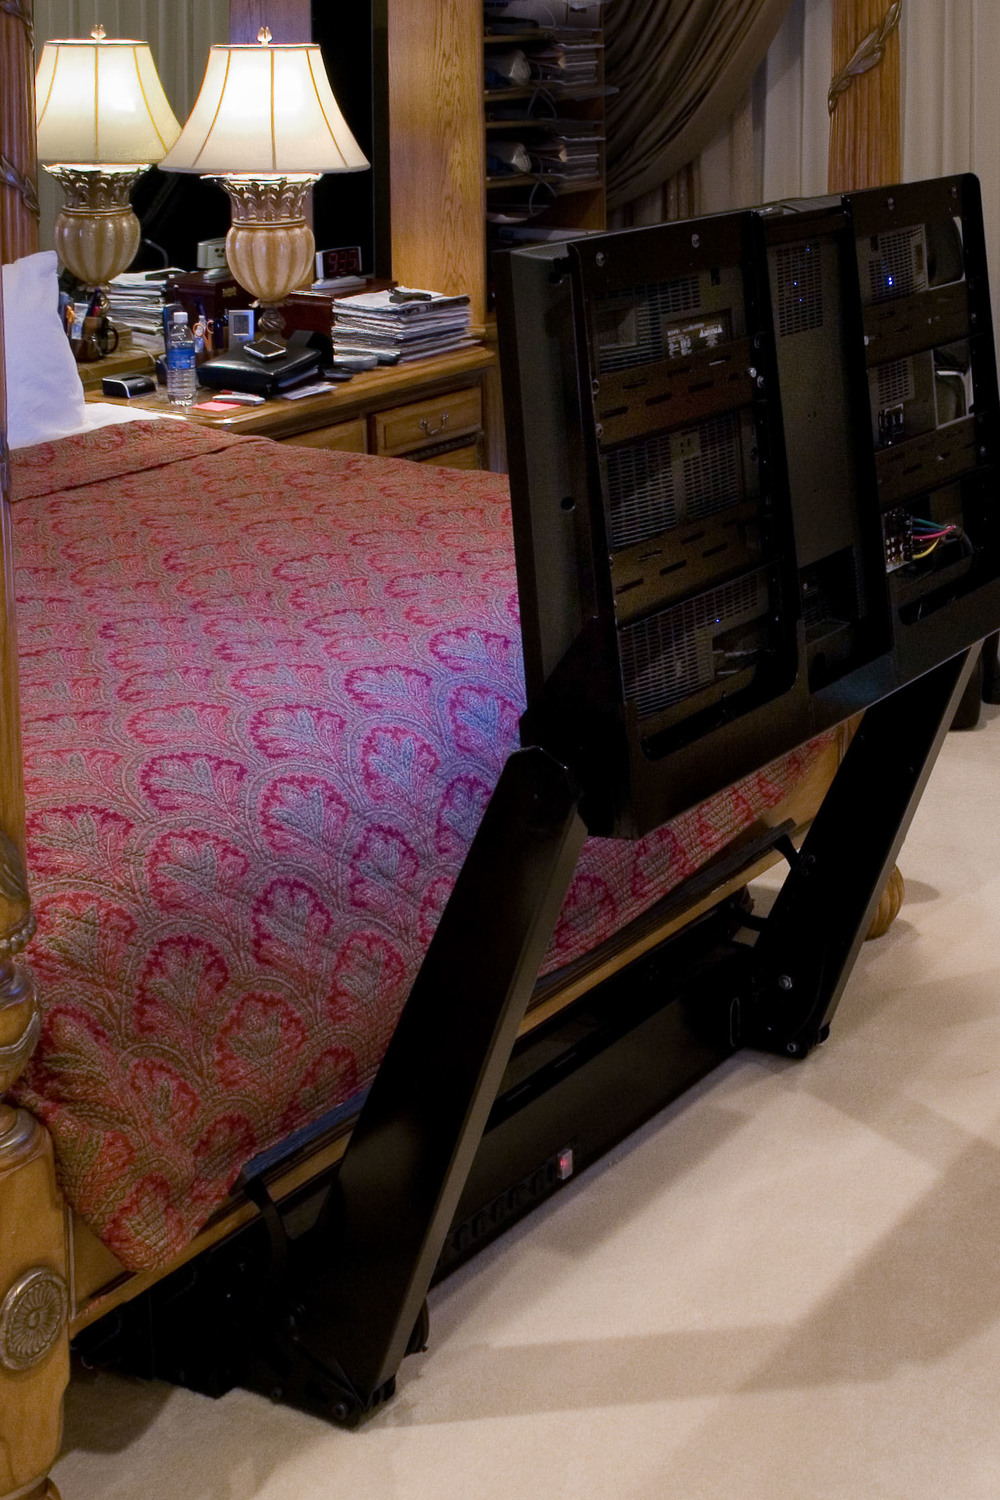 A unique TV storage solution!  This TV folds itself up, and puts itself away, with the touch of a button!